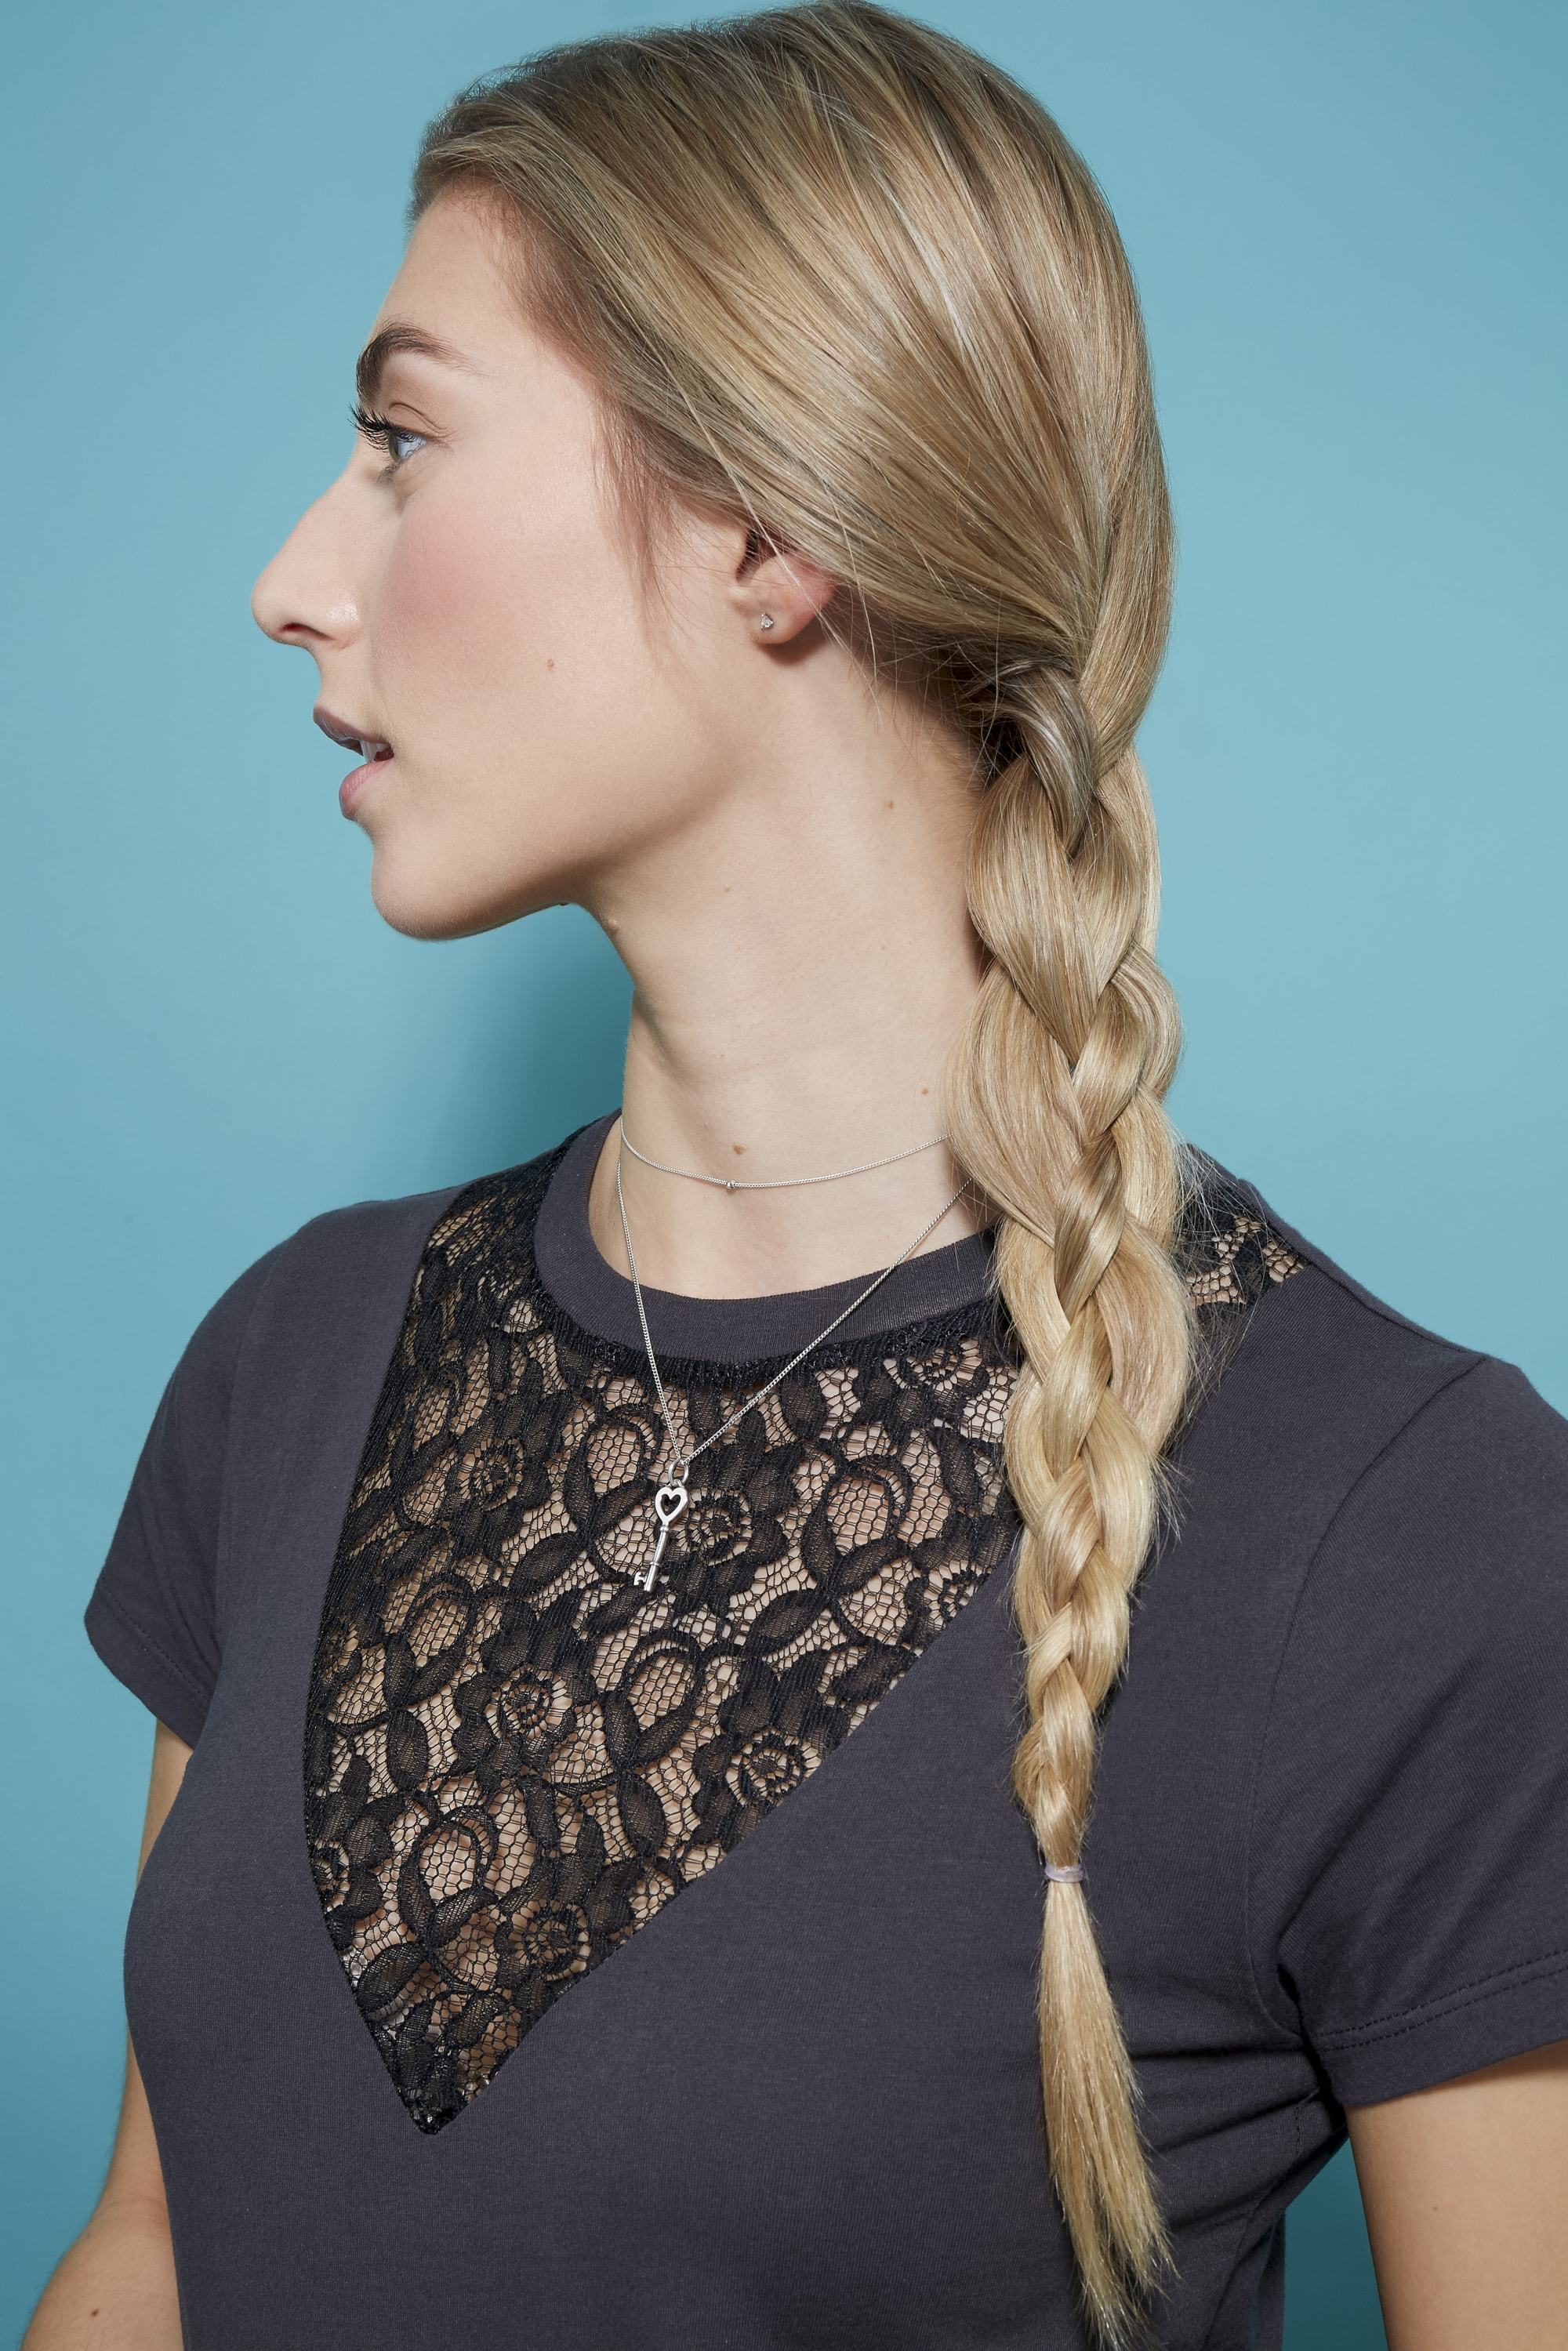 Braids for long hair: Woman with long blonde straight hair in side braid wearing a black top